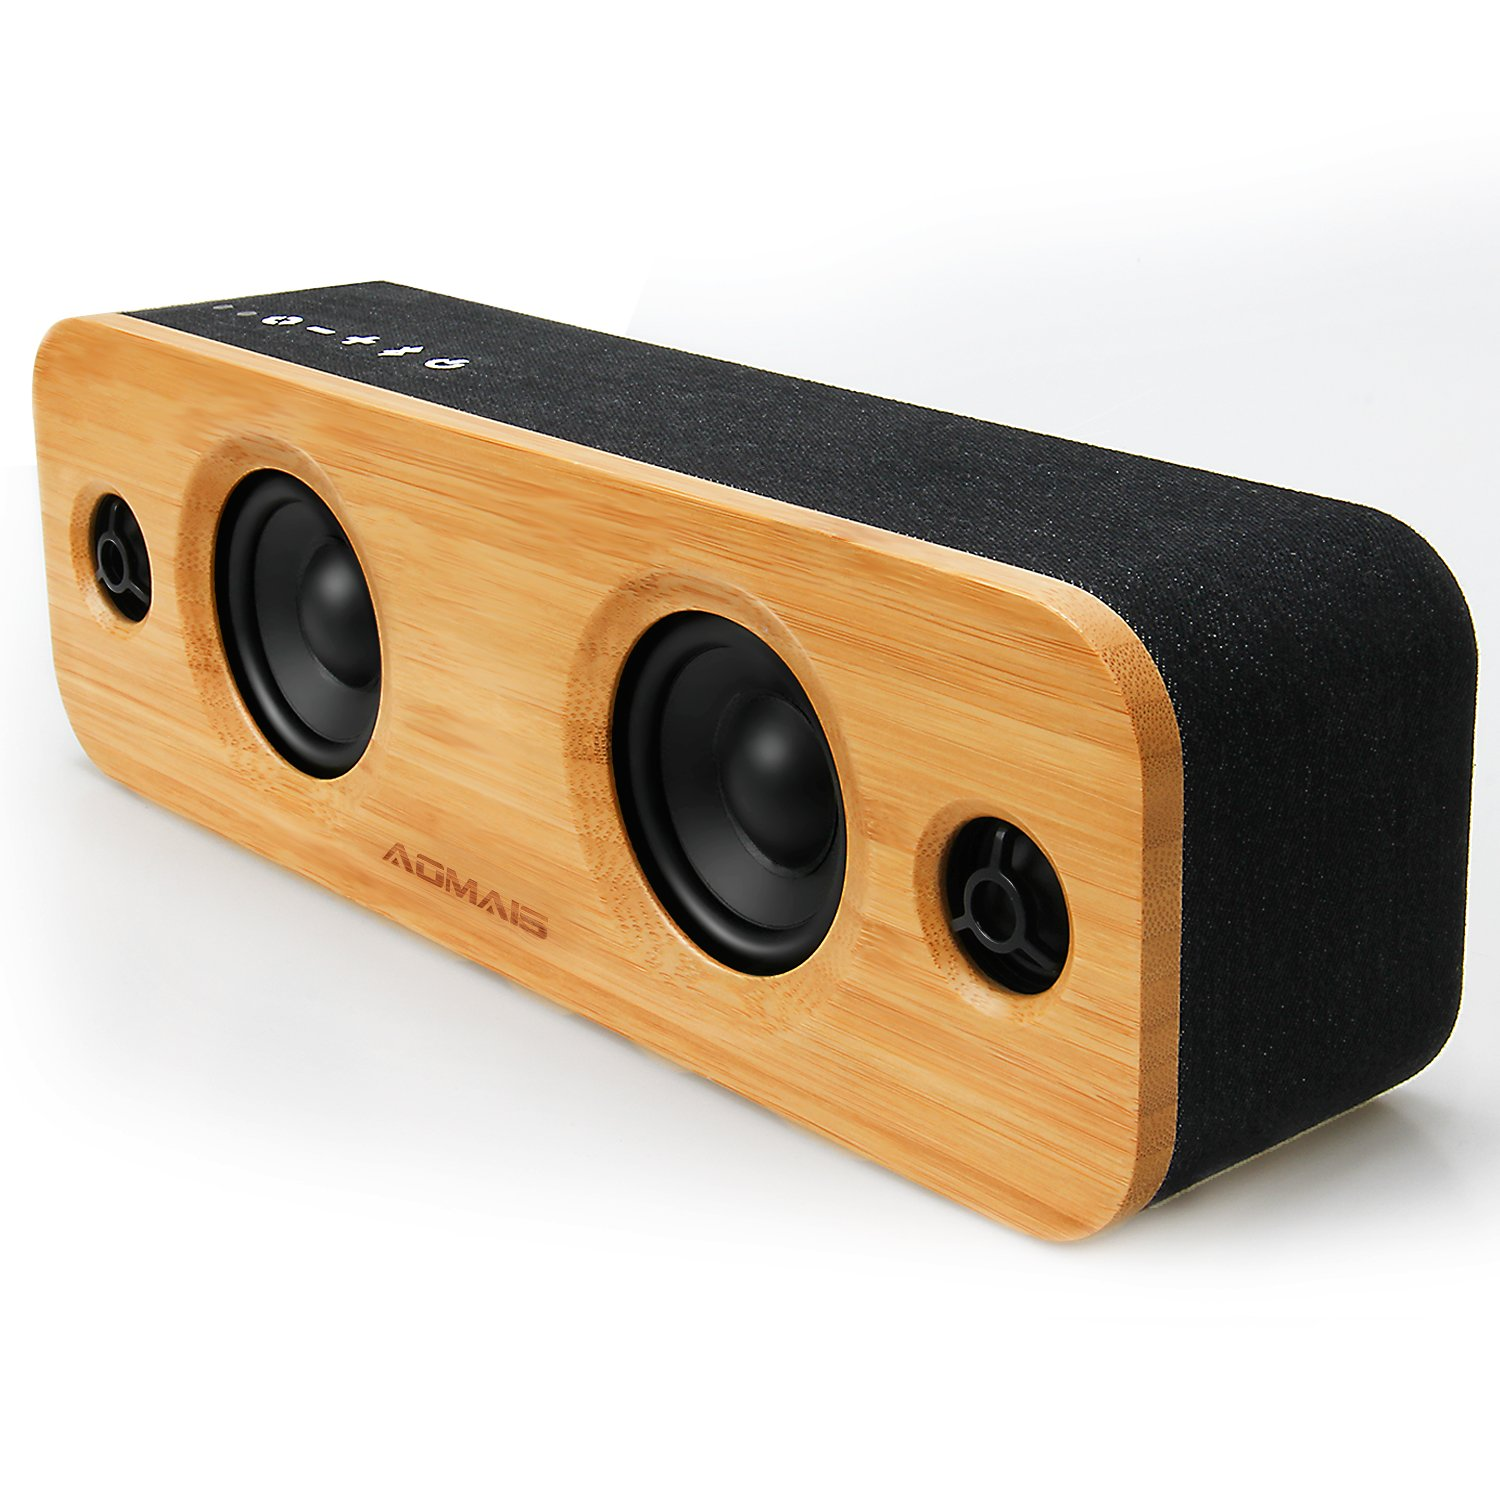 AOMAIS Life 30W Bluetooth Speakers, Loud Bamboo Wood Home Audio Wireless Speaker with Super Bass, 3EQ Modes for Home, Outdoors Party & Subwoofer by AOMAIS